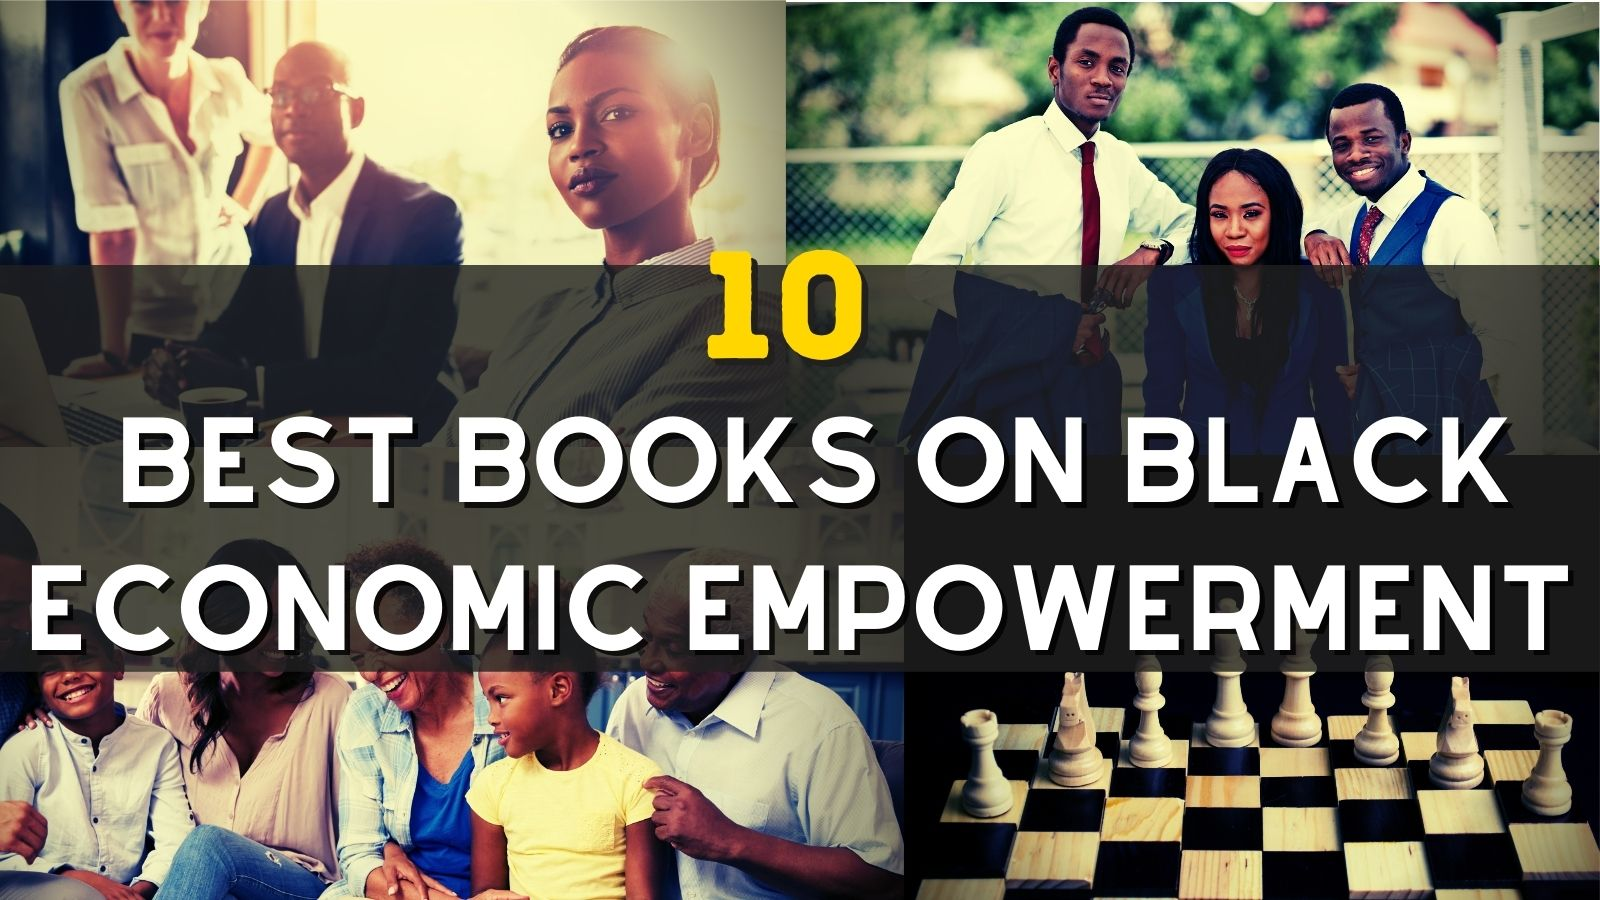 10 Best Books On Black Economic Empowerment